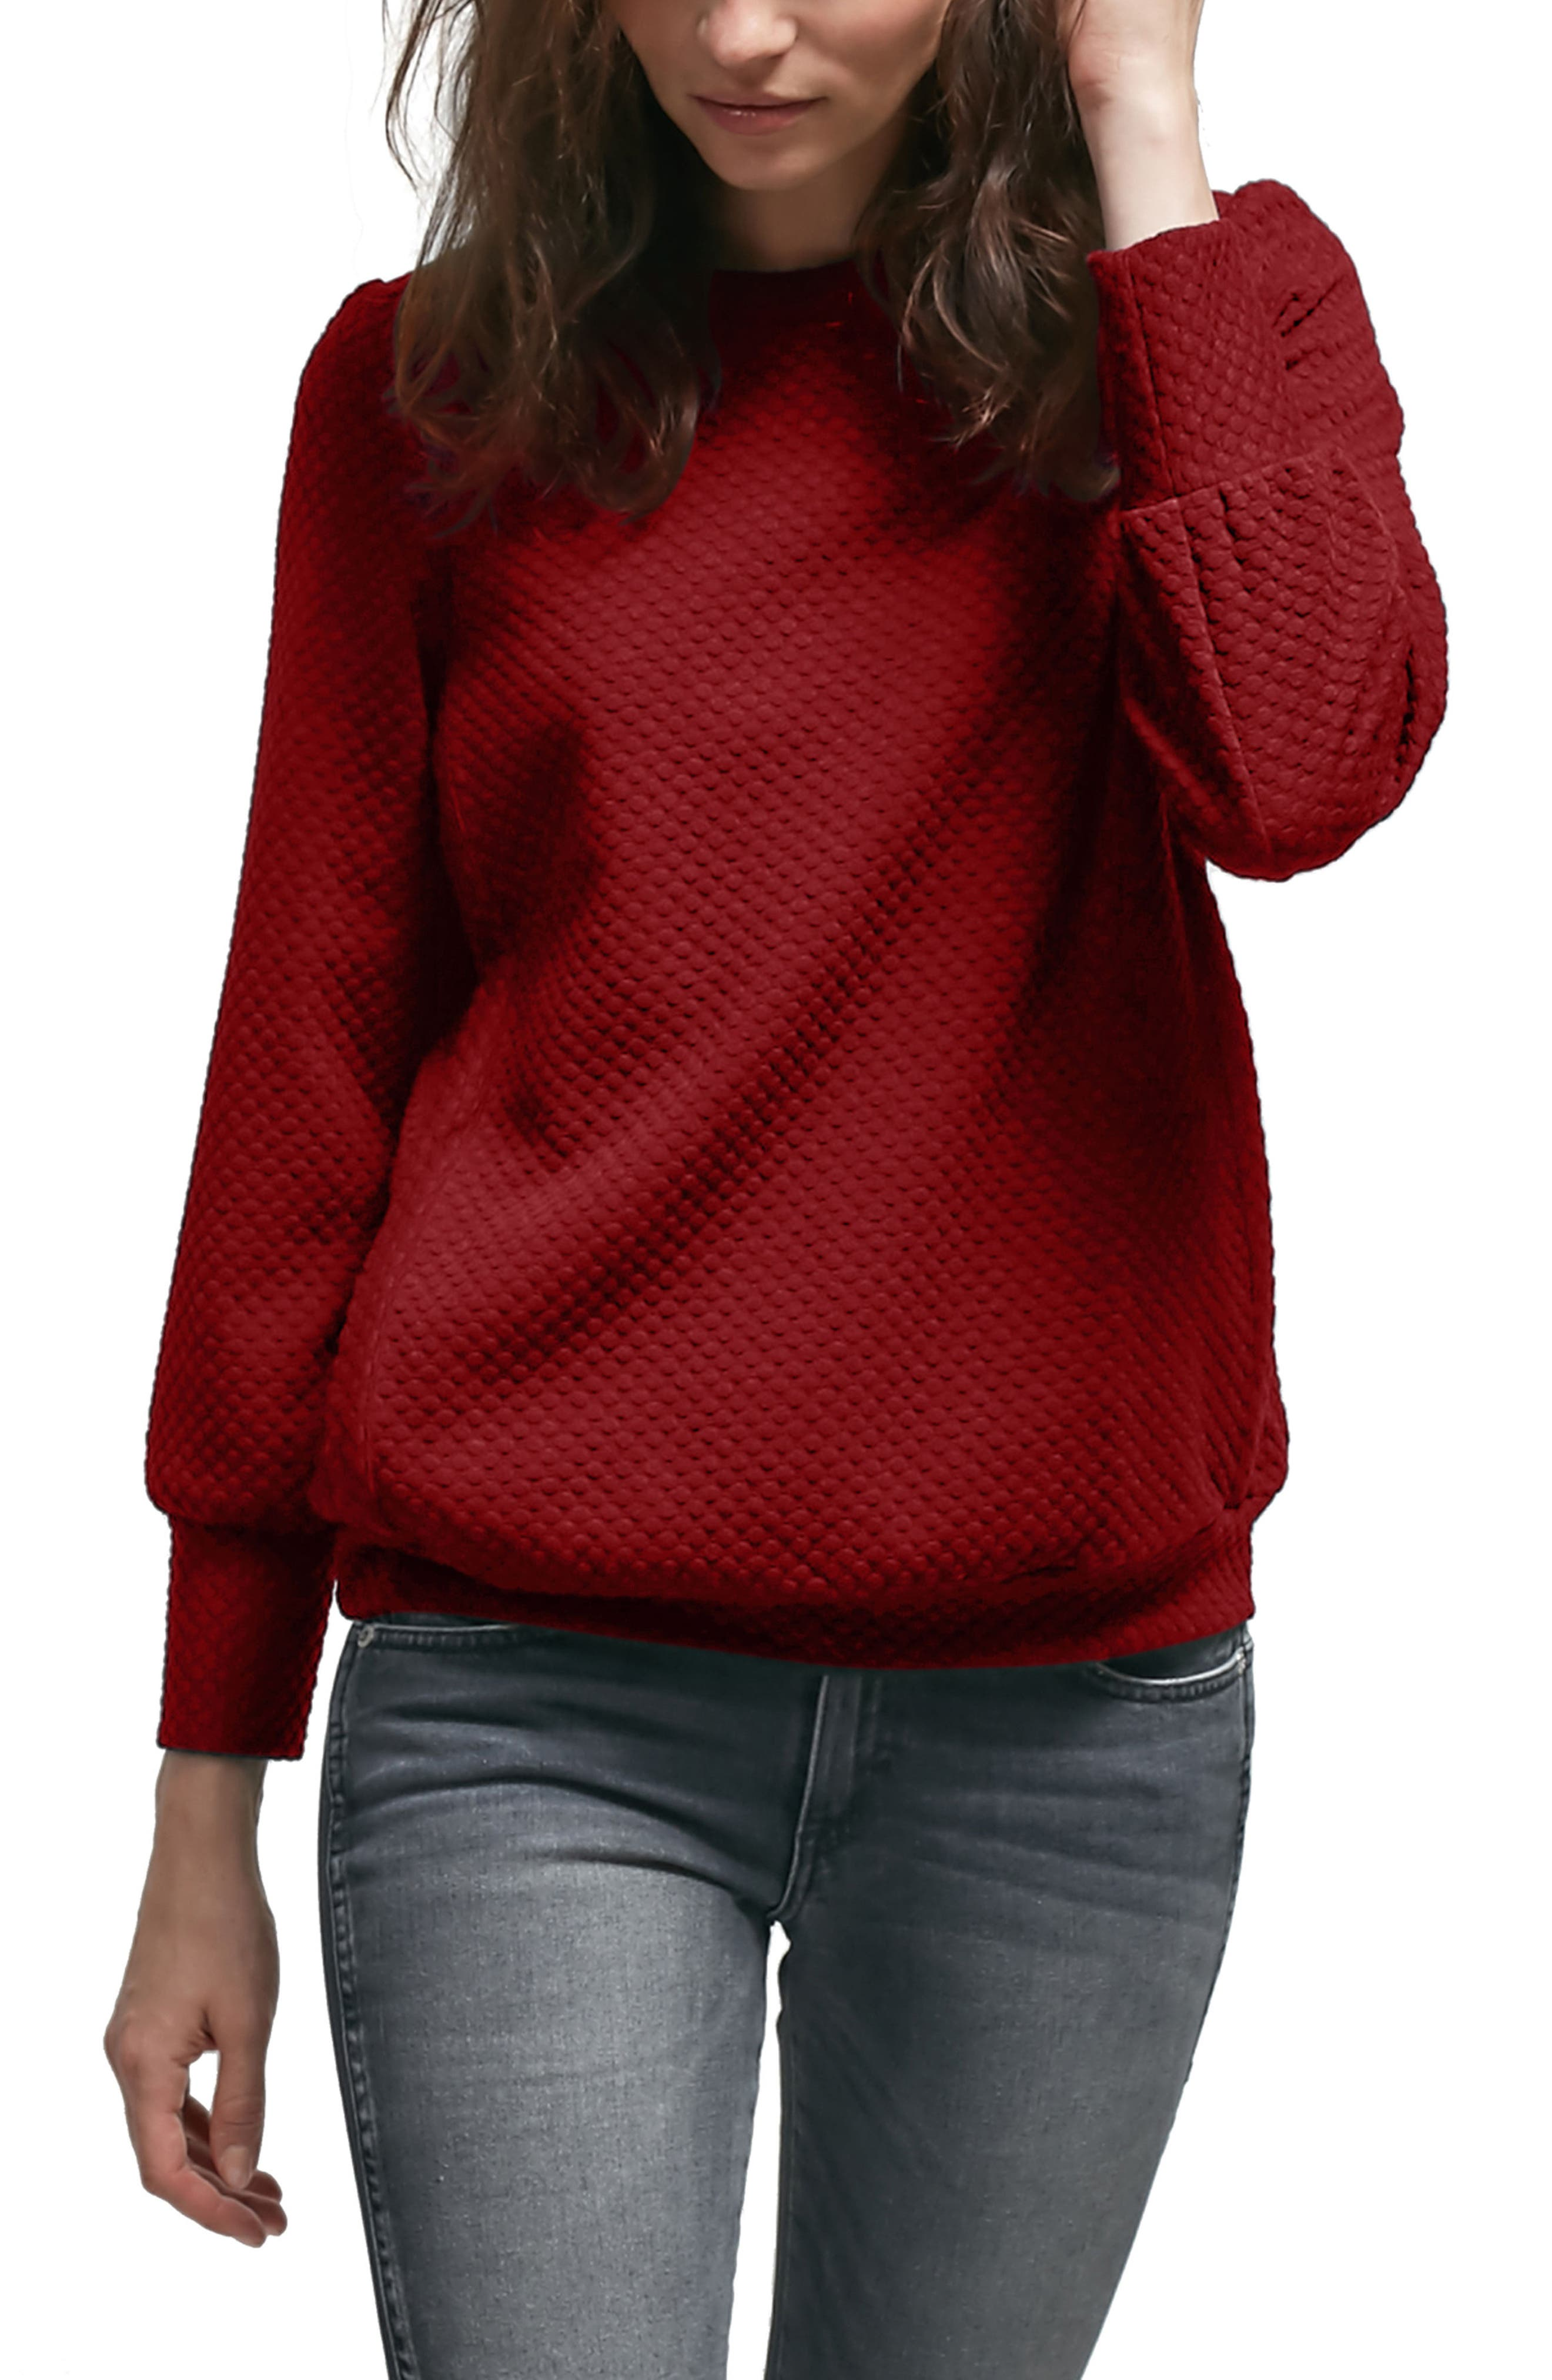 Esther Nursing Sweater,                             Main thumbnail 1, color,                             Ruby